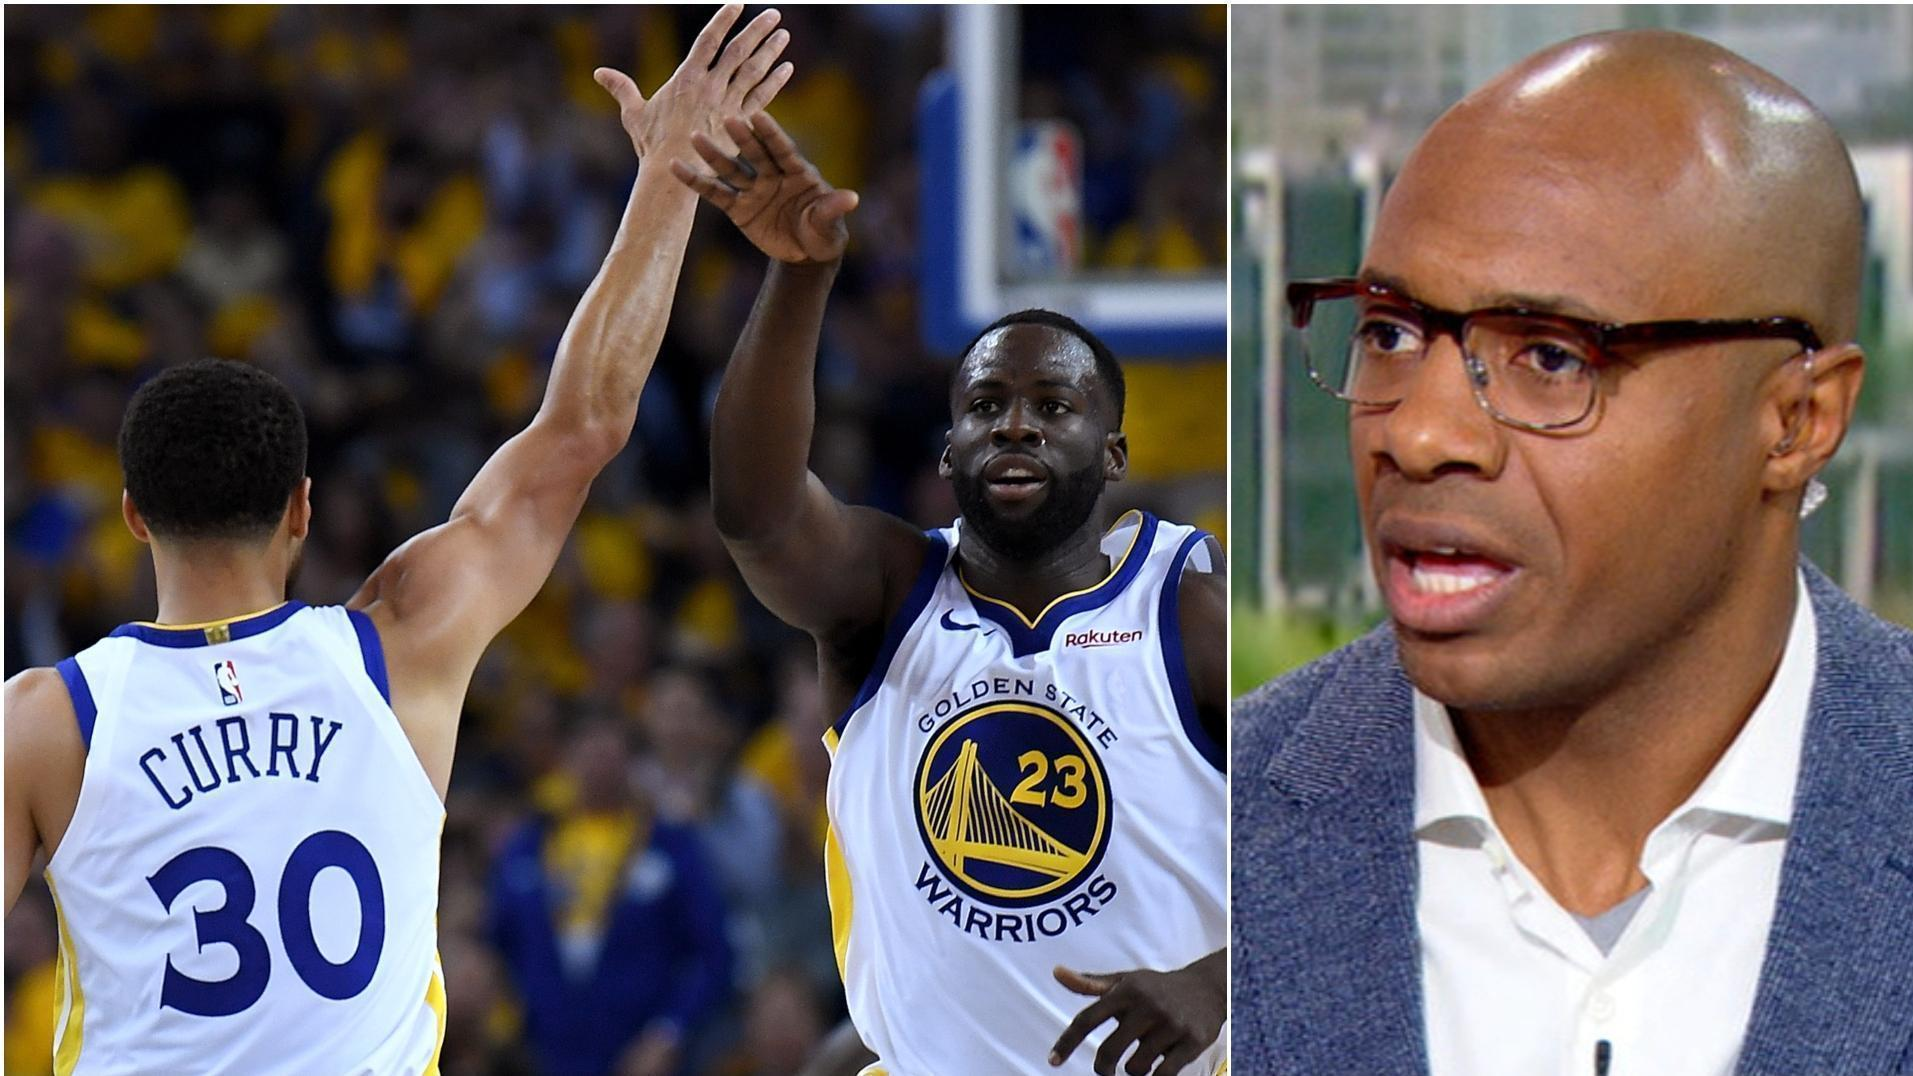 f2a2b11220bf Williams  Home court advantage will give Warriors series win. Jay Williams  explains ...